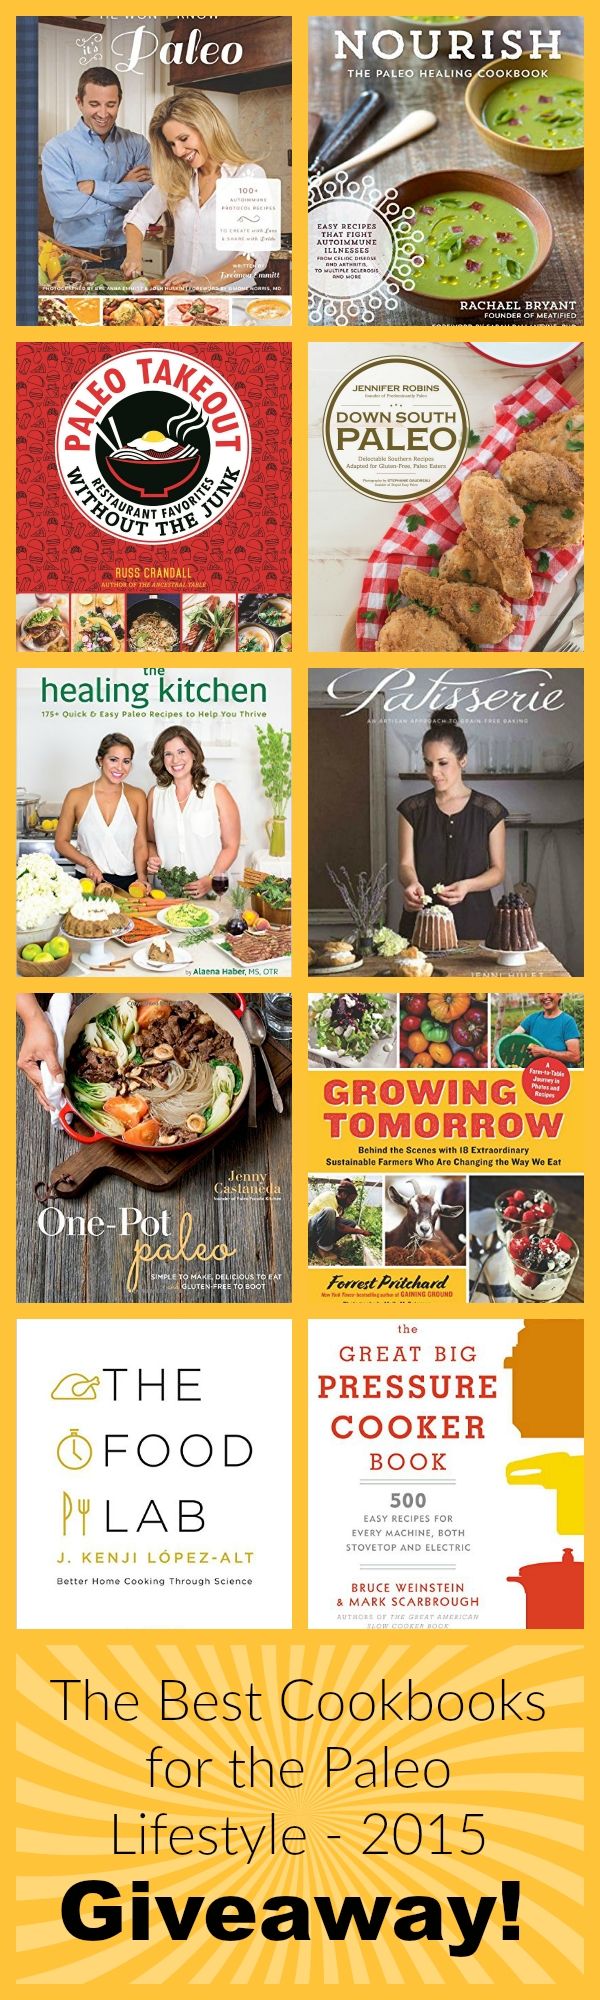 paleo cookbooks 2